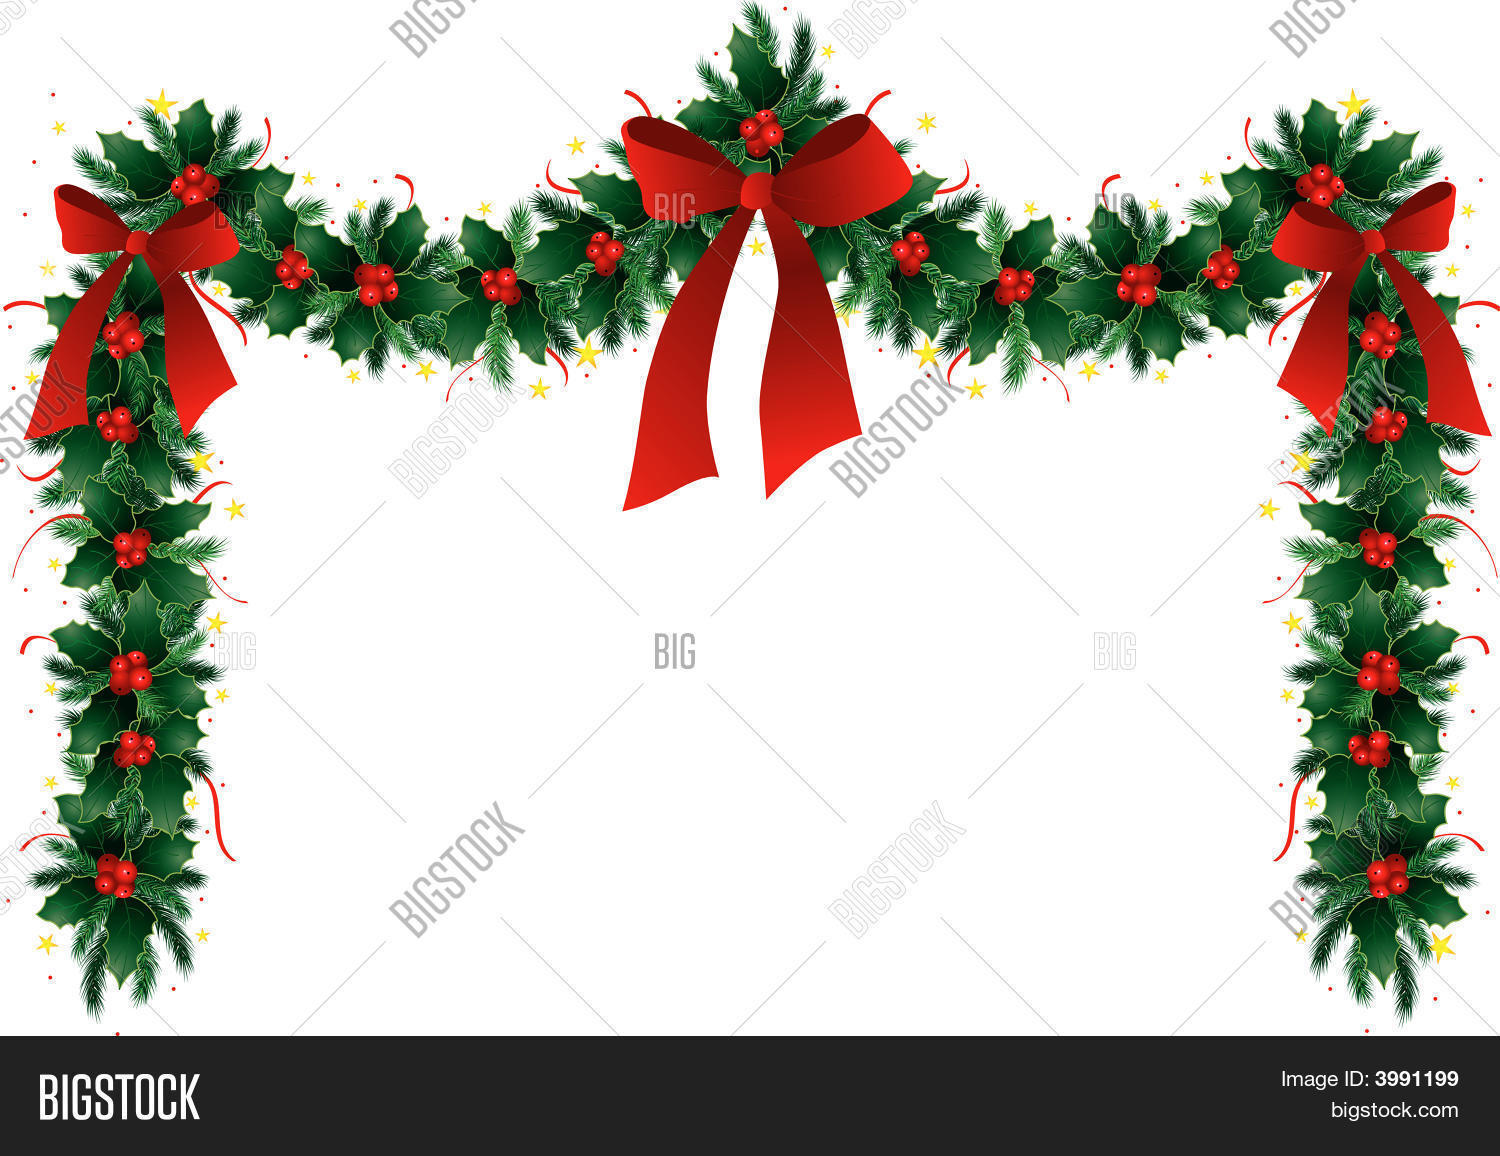 Christmas Garland Vector Photo Free Trial Bigstock